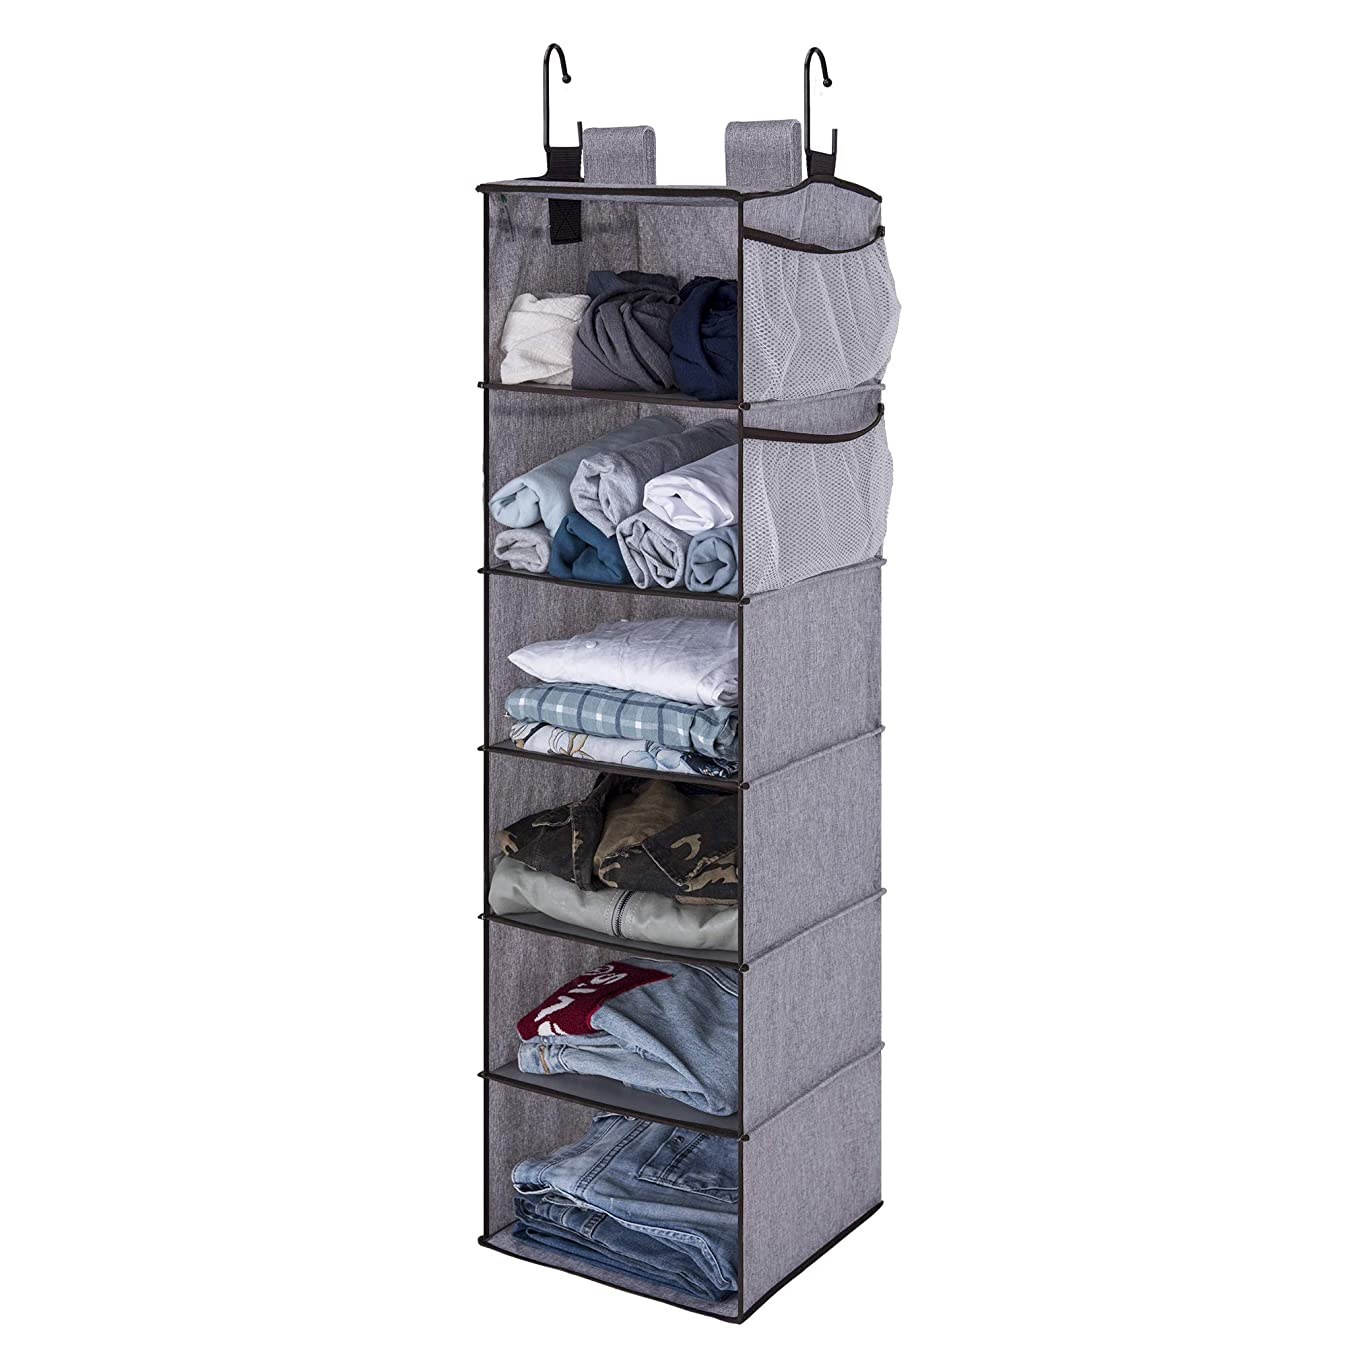 StorageWorks Hanging Closet Organizer, 6 Shelf Closet Organizer, 2 Ways Dorm Closet Organizers and Storage, Sweater Organizer for Closet, Gray, 12x12x42 inches